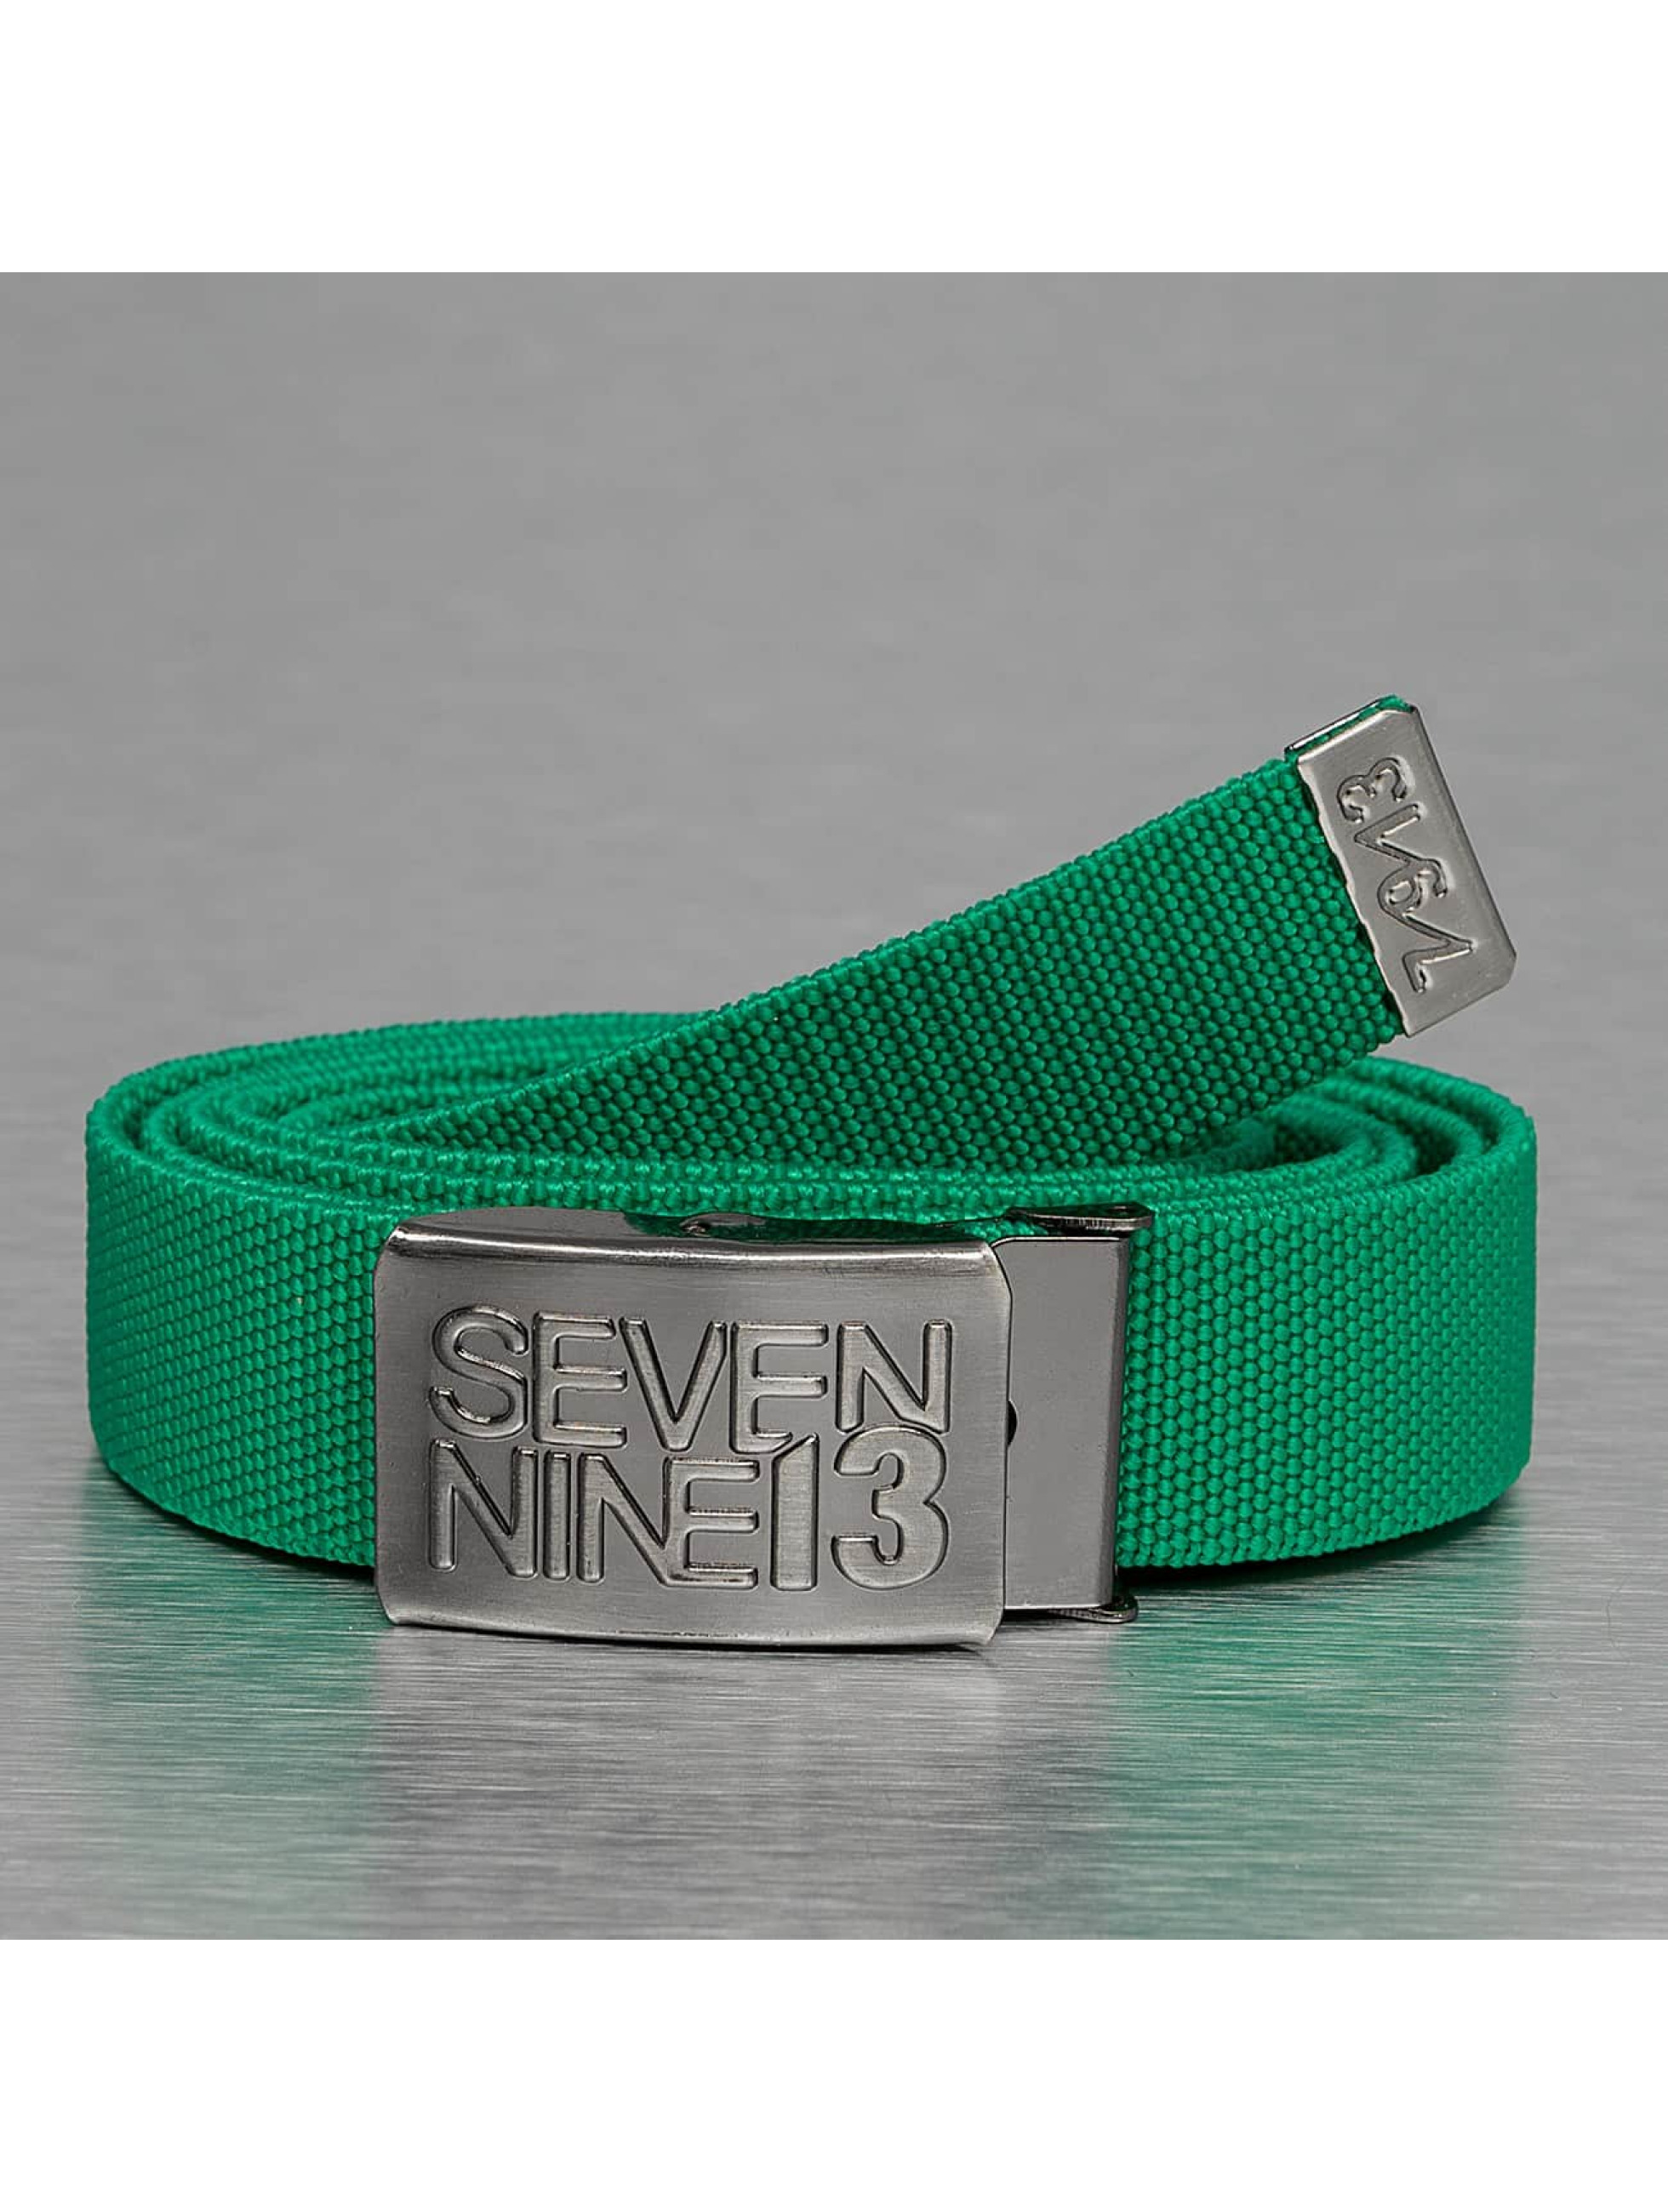 Seven Nine 13 riem Jaws Stretch groen